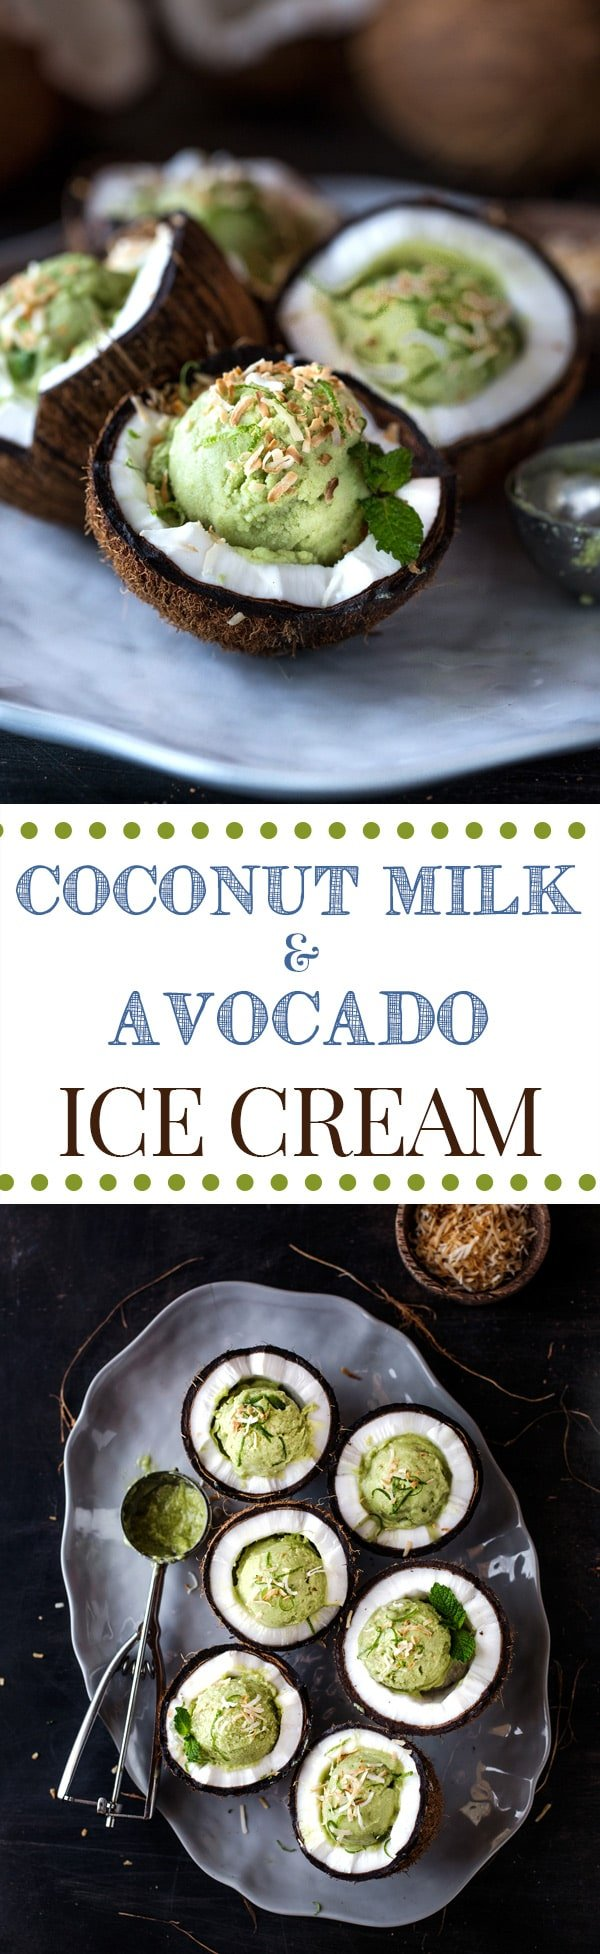 Coconut Milk and Avocado Ice Cream: A Vegetarian ice cream recipe made with coconut milk and avocados.  Two photos on top of each other.